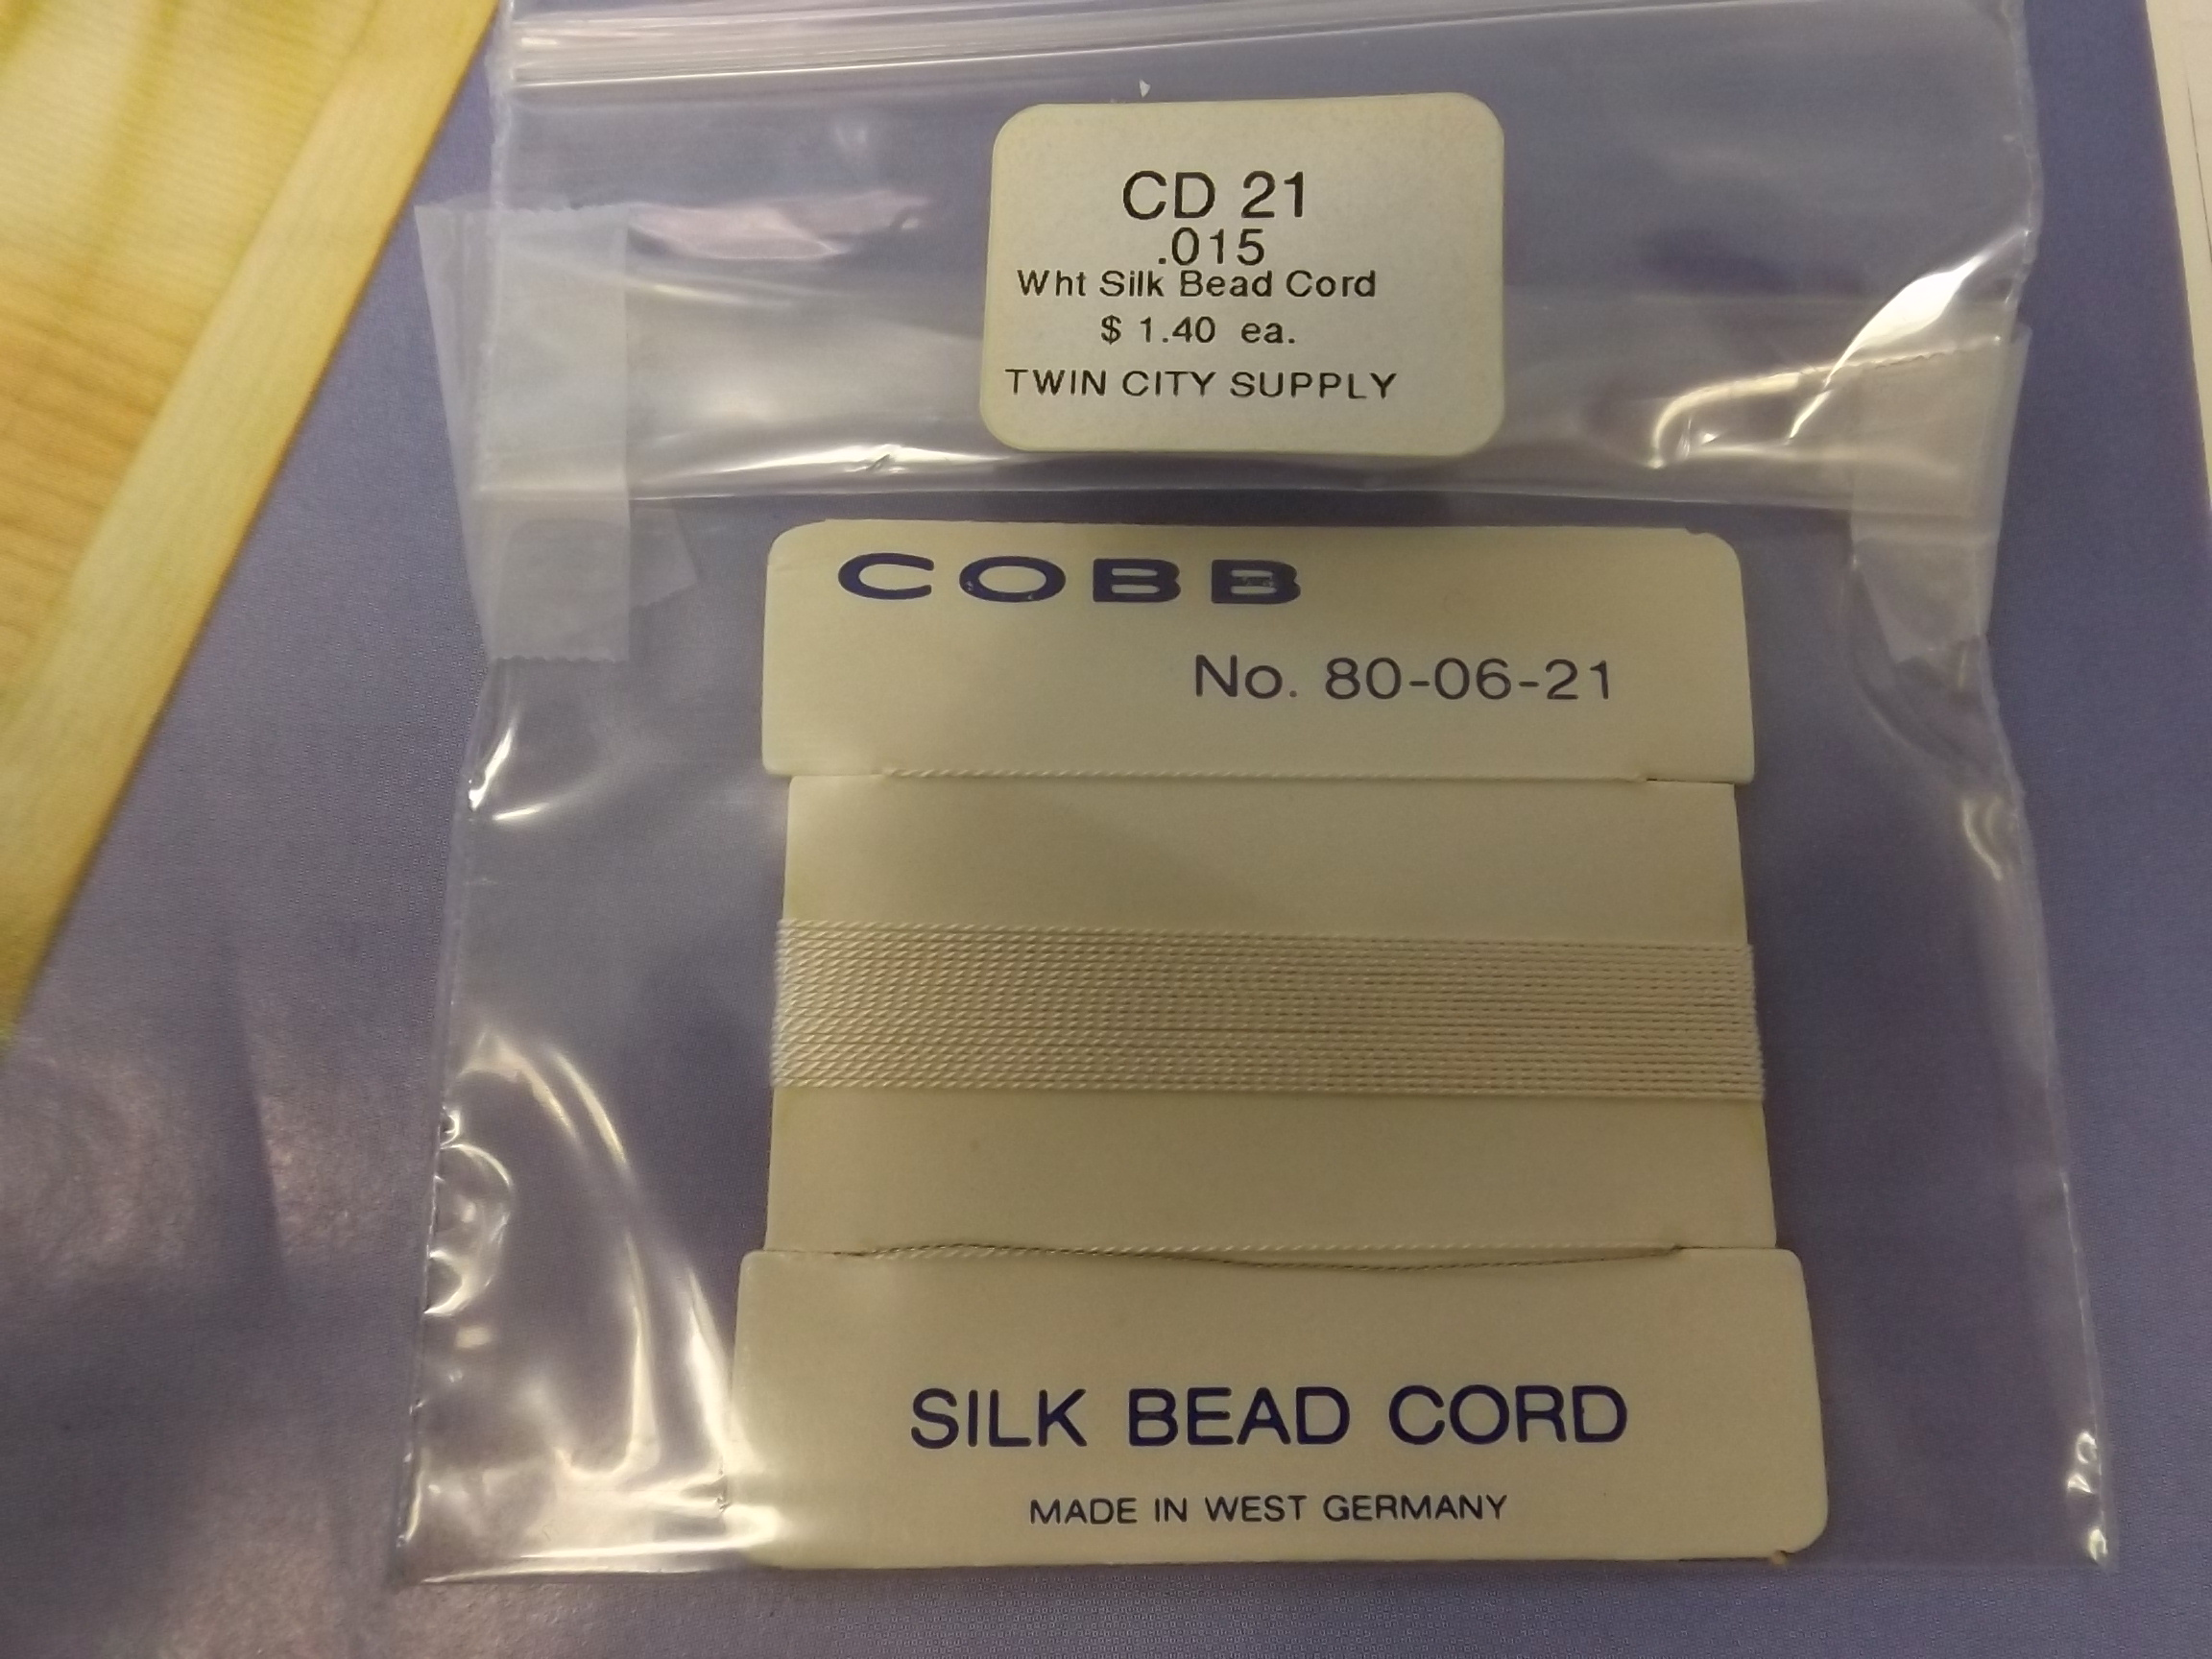 CD21 Cobb White Silk Bead Cord #80-06-21 -while supplies last!